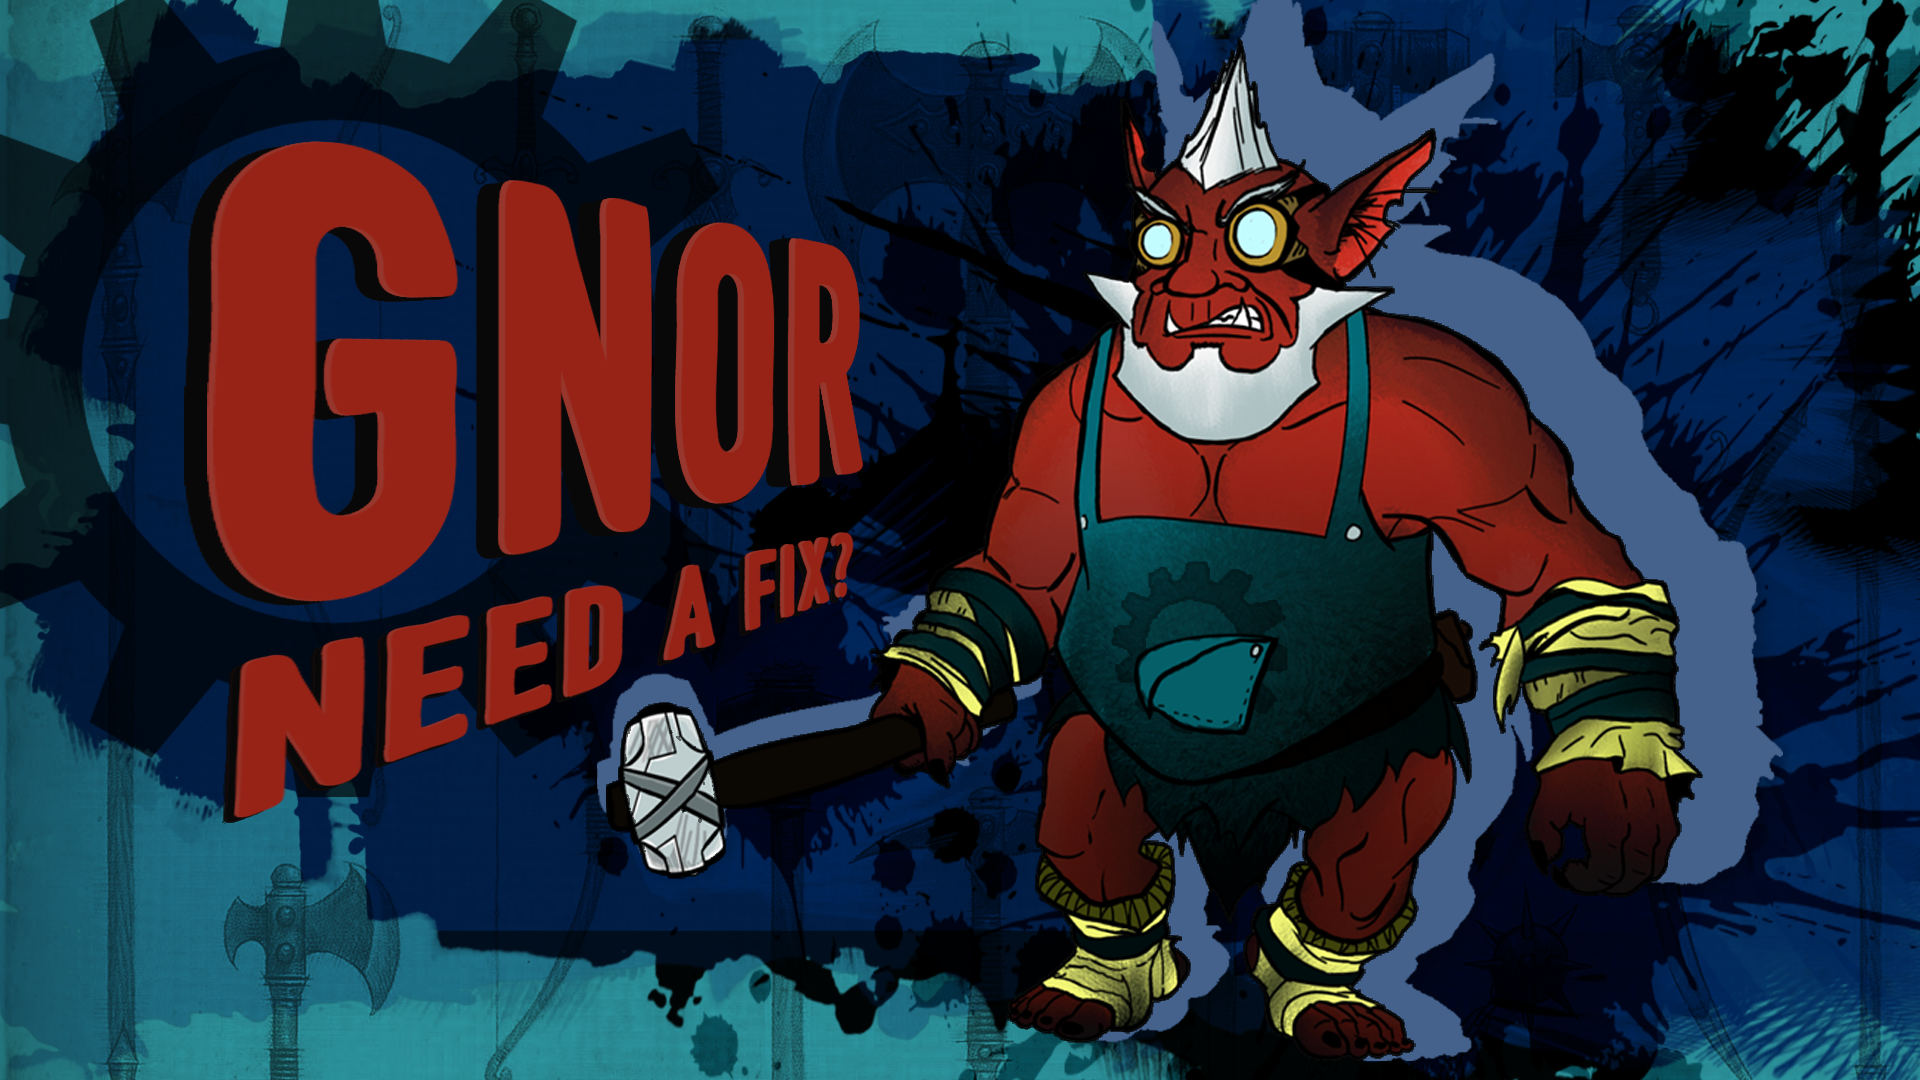 Gnor - Character Design